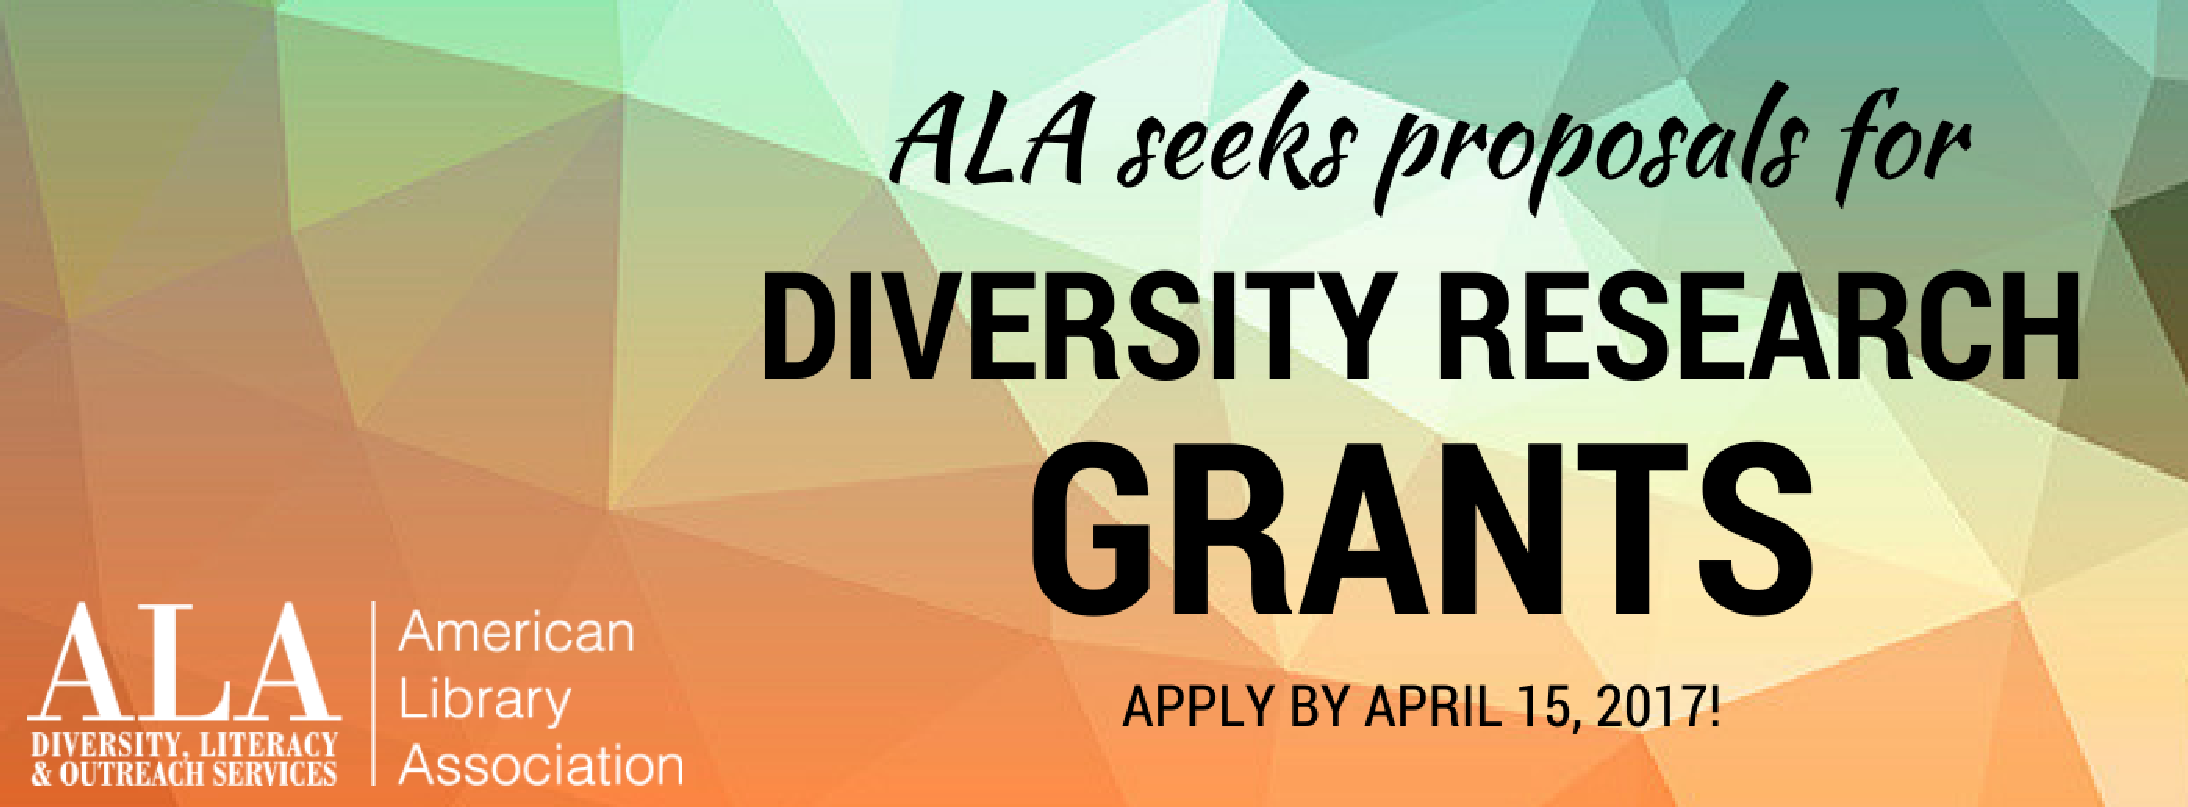 ALA seeks proposals for Diversity Research Grants by April 15